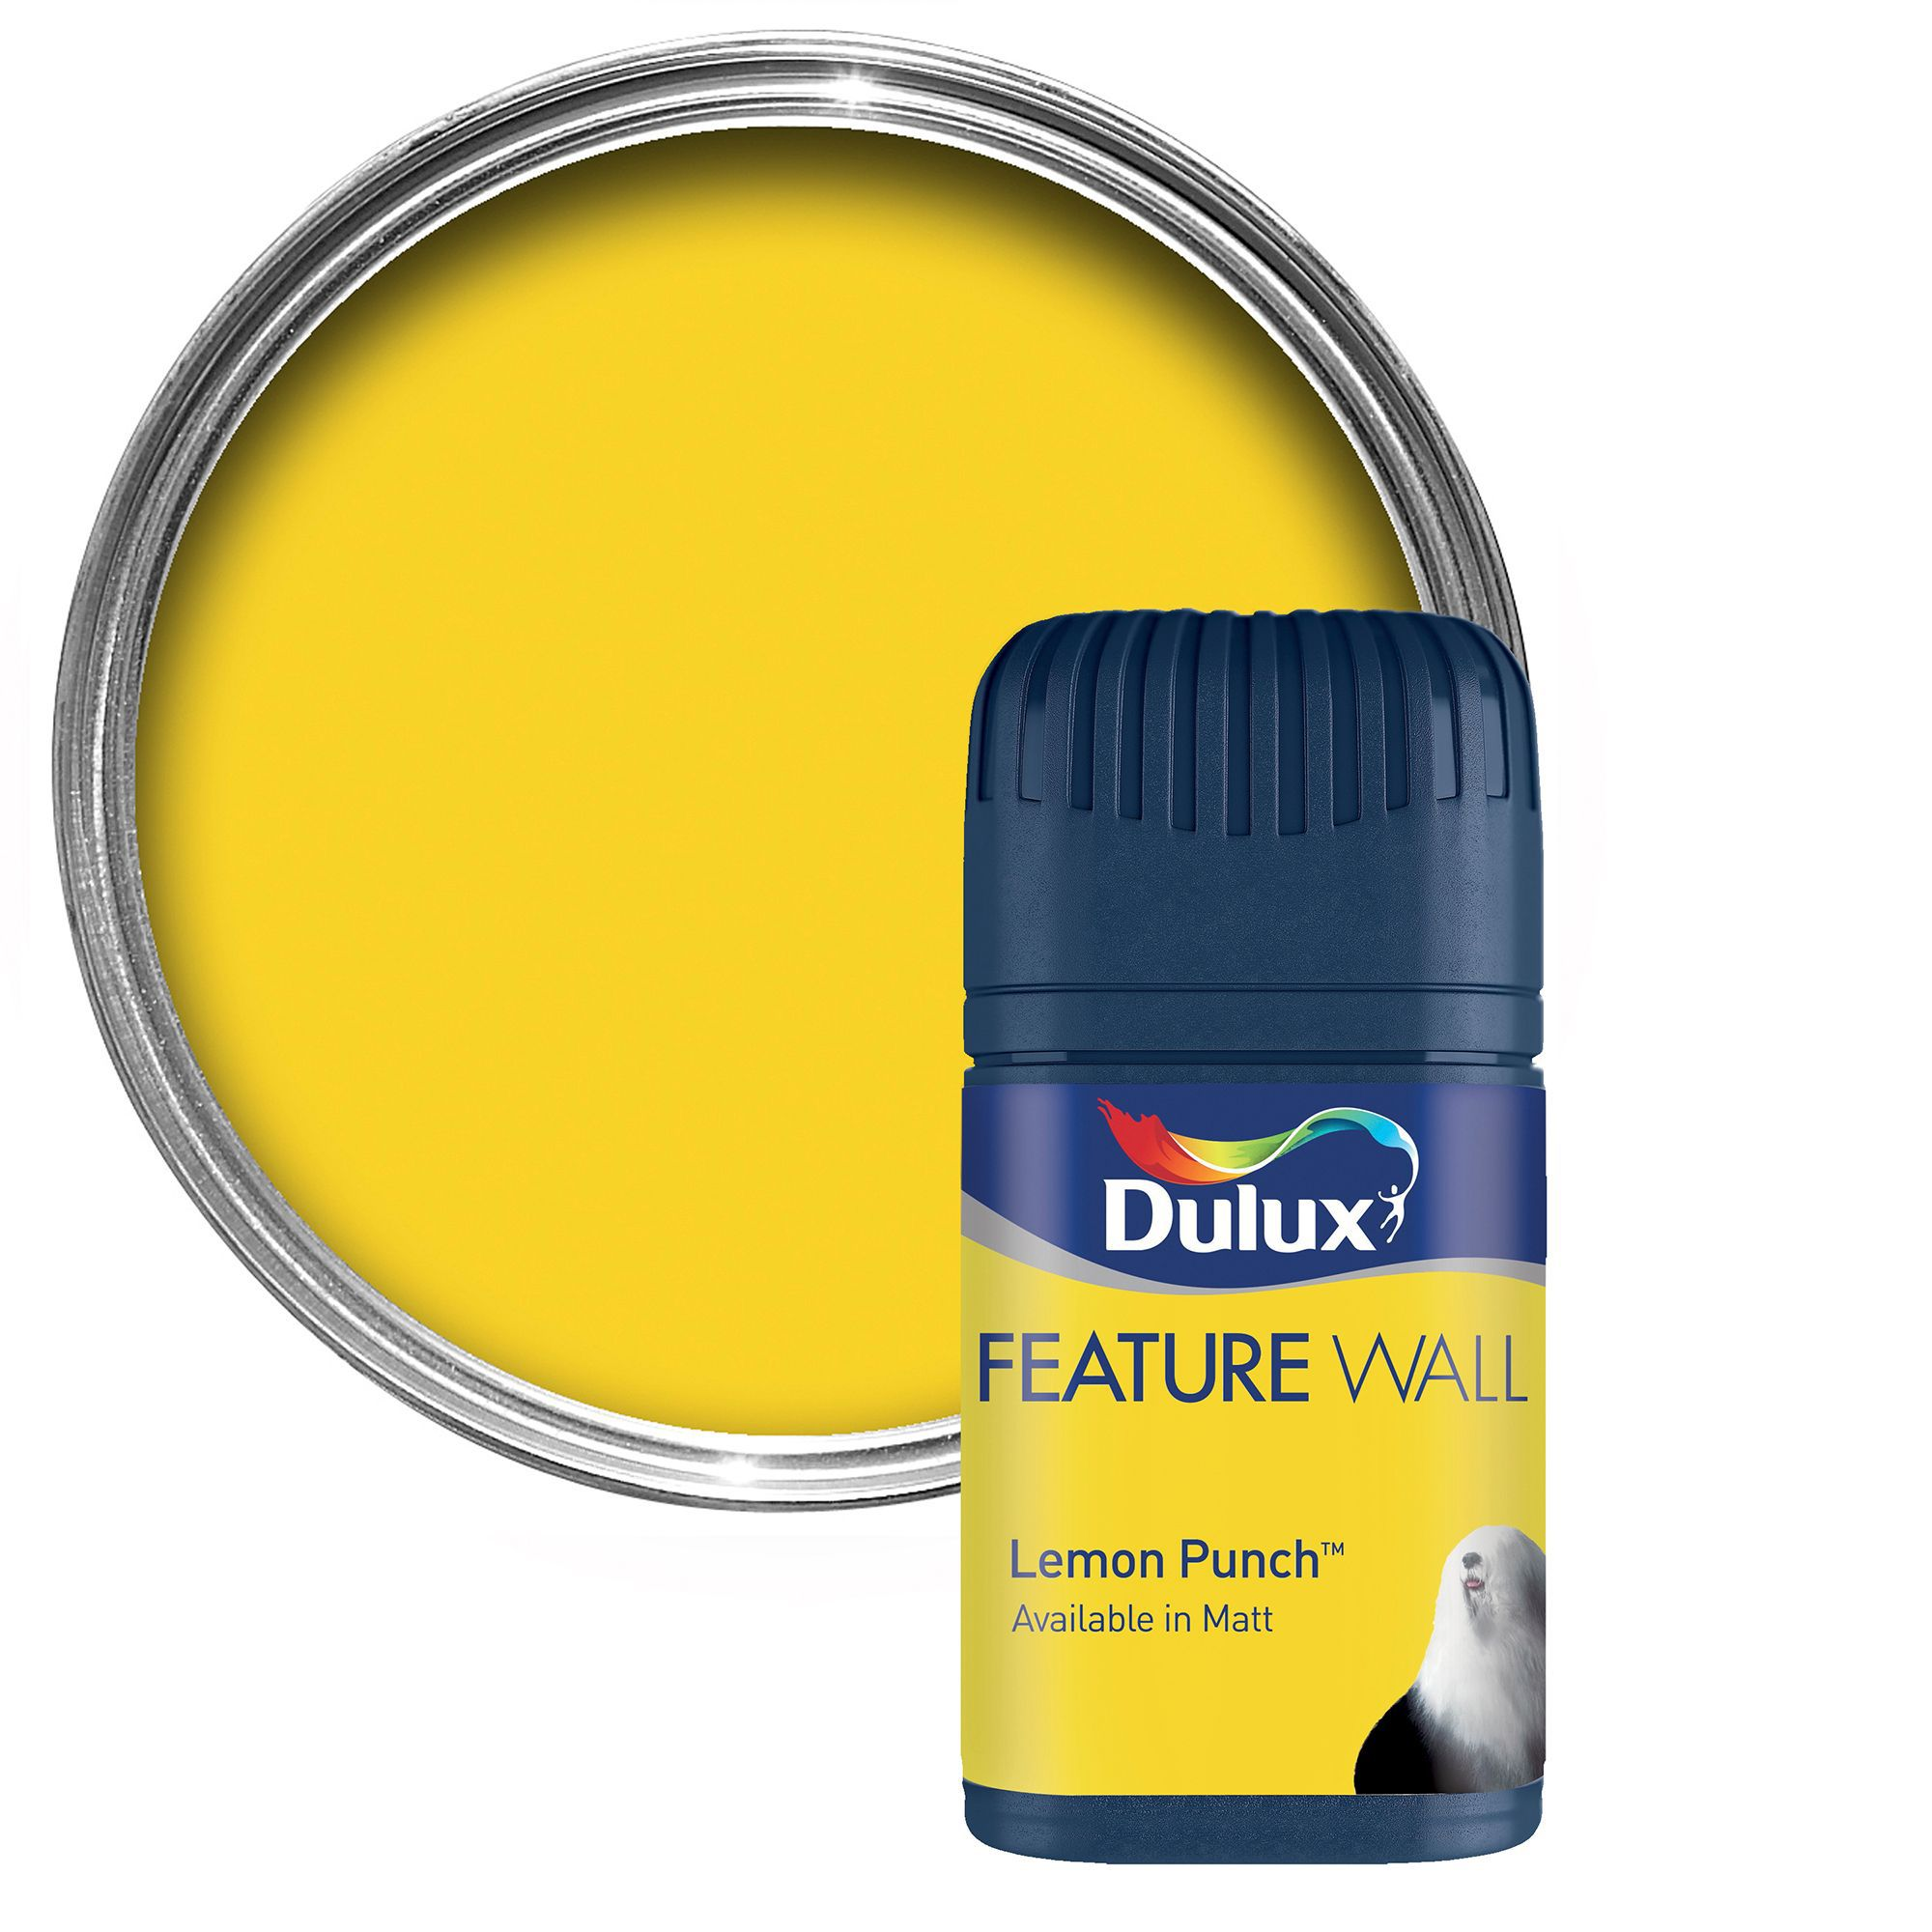 Dulux Feature Wall Lemon Punch Matt Emulsion Paint 0.05L Tester Pot ...